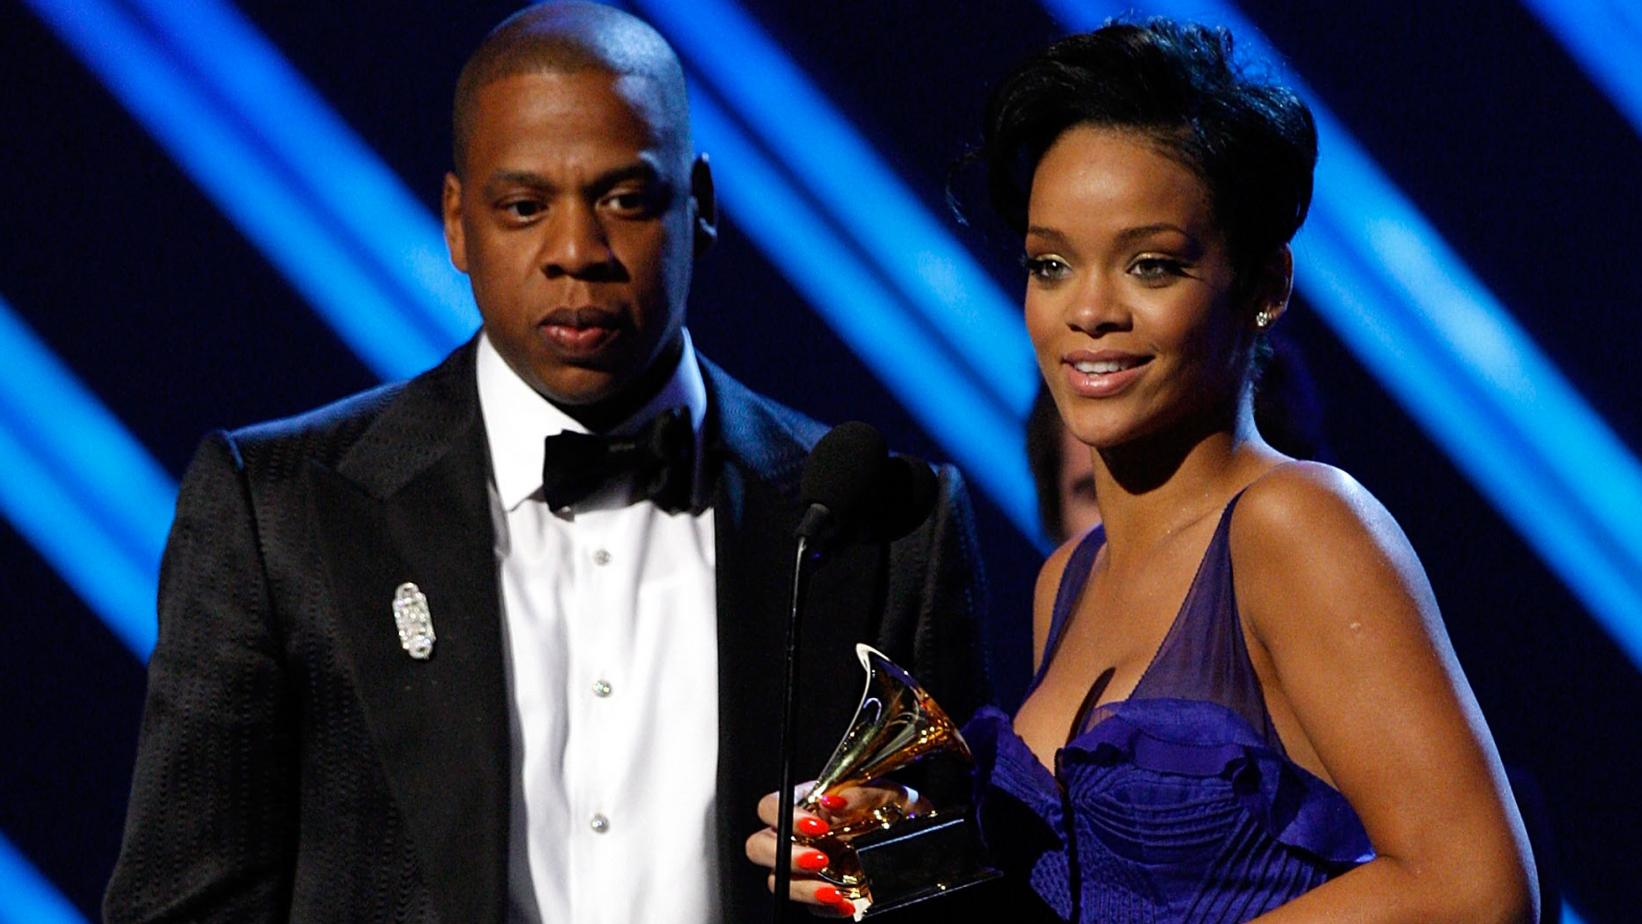 JAY-Z & Rihanna at the 2008 GRAMMYs